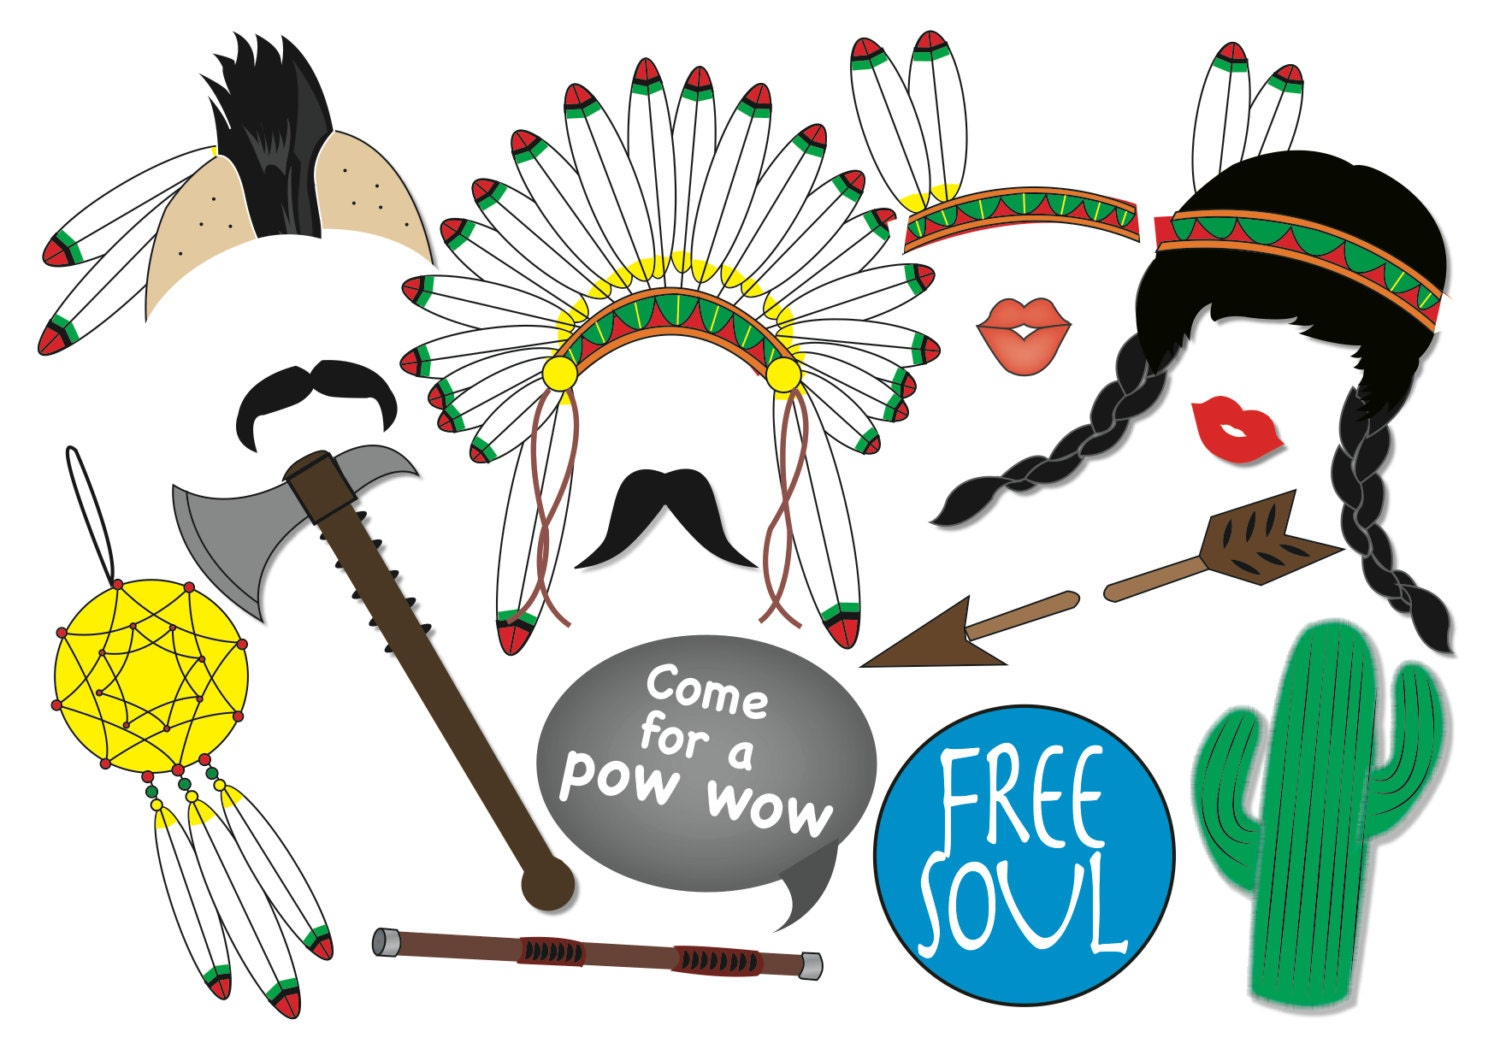 American Indian Photo Booth Party Props Set 15 Piece